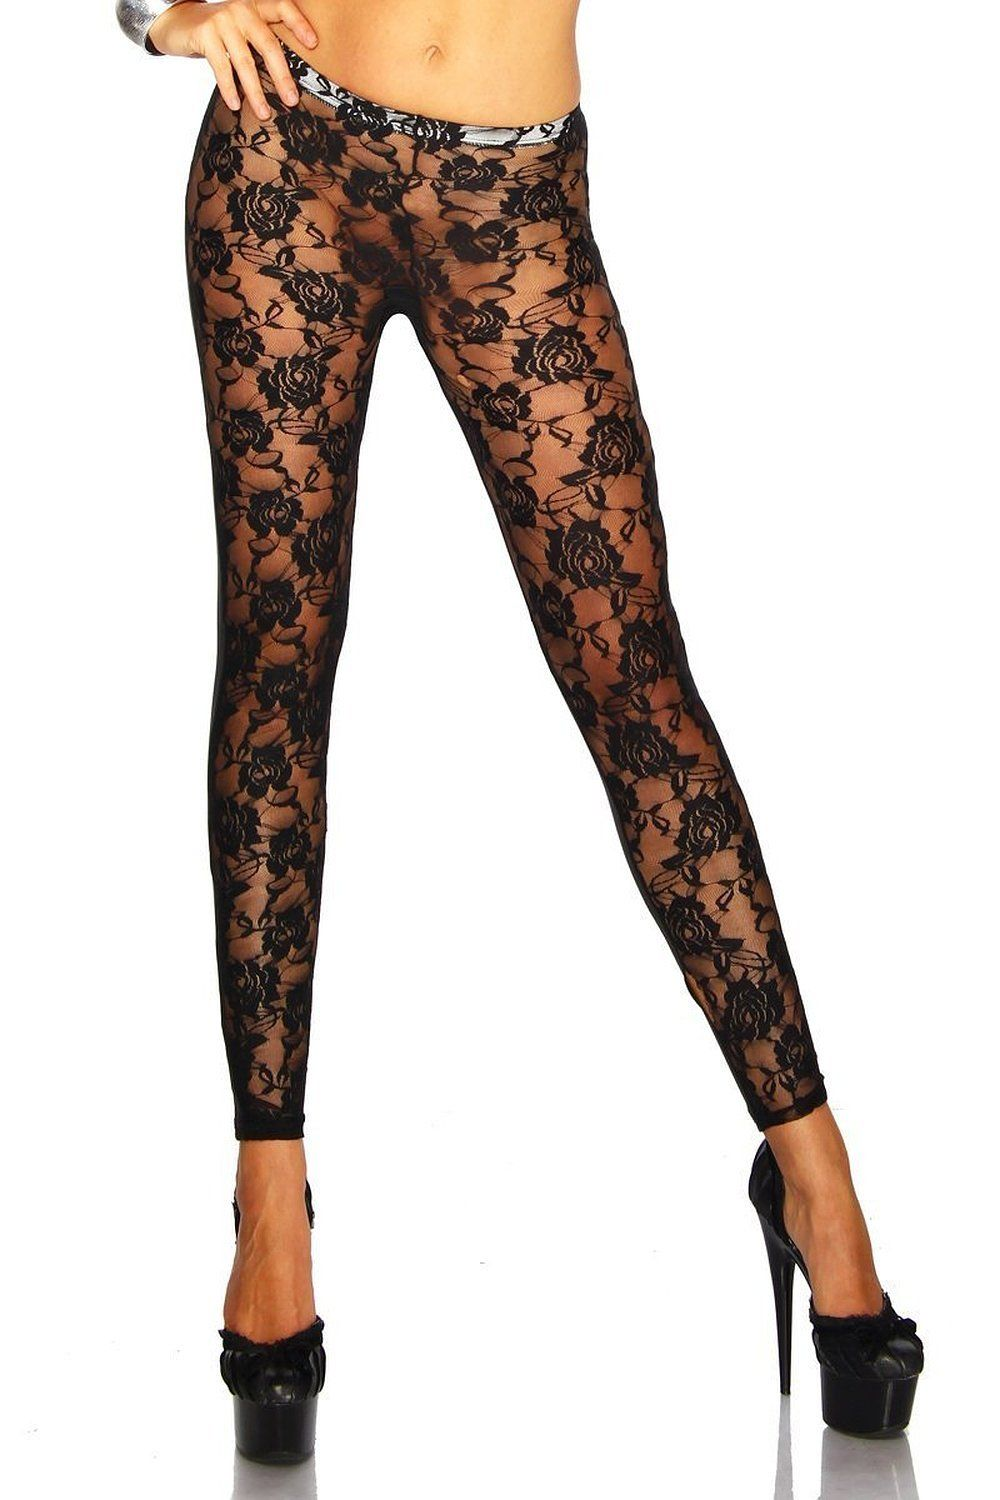 d83b09a753bc4 Dawdyfu Sexy Black Floral Rose Lace See Through Leggings Pants Tights (3)  at Amazon Women's Clothing store: